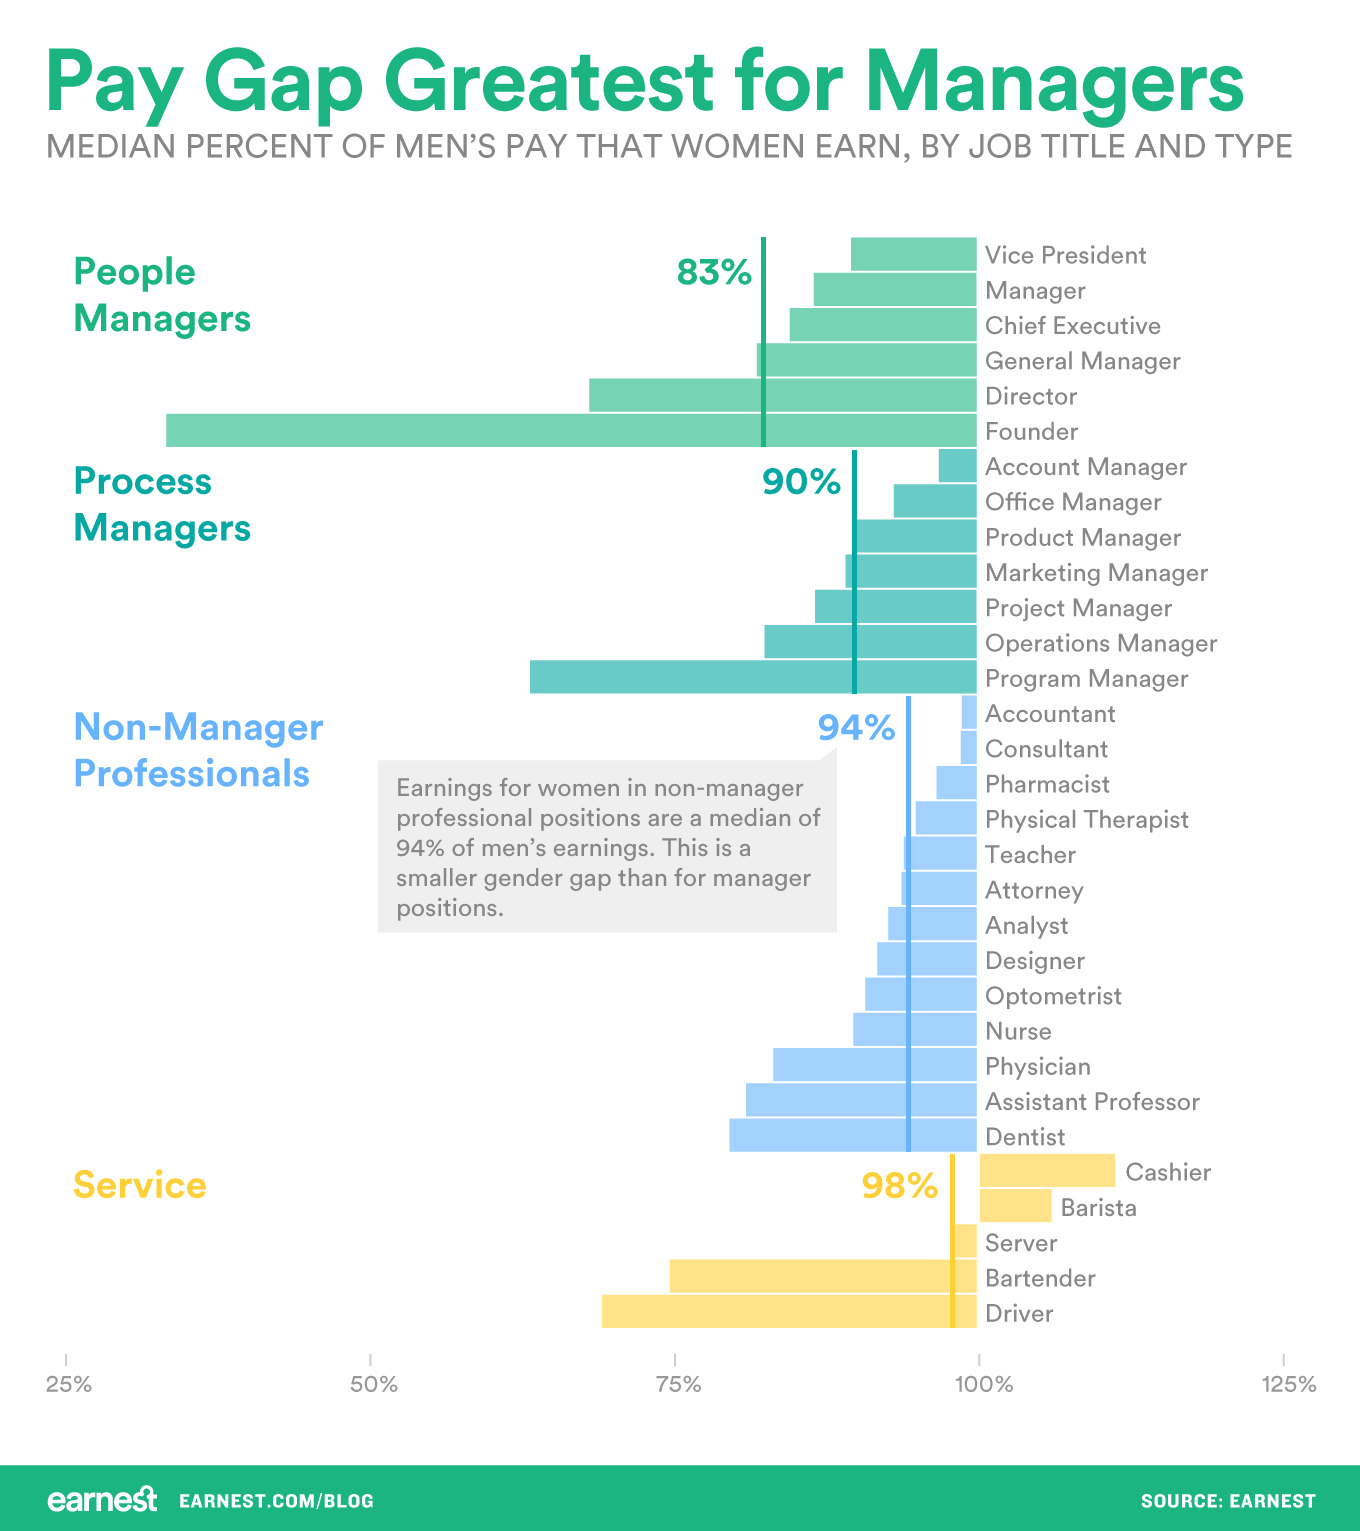 pay-gap-greatest-for-managers